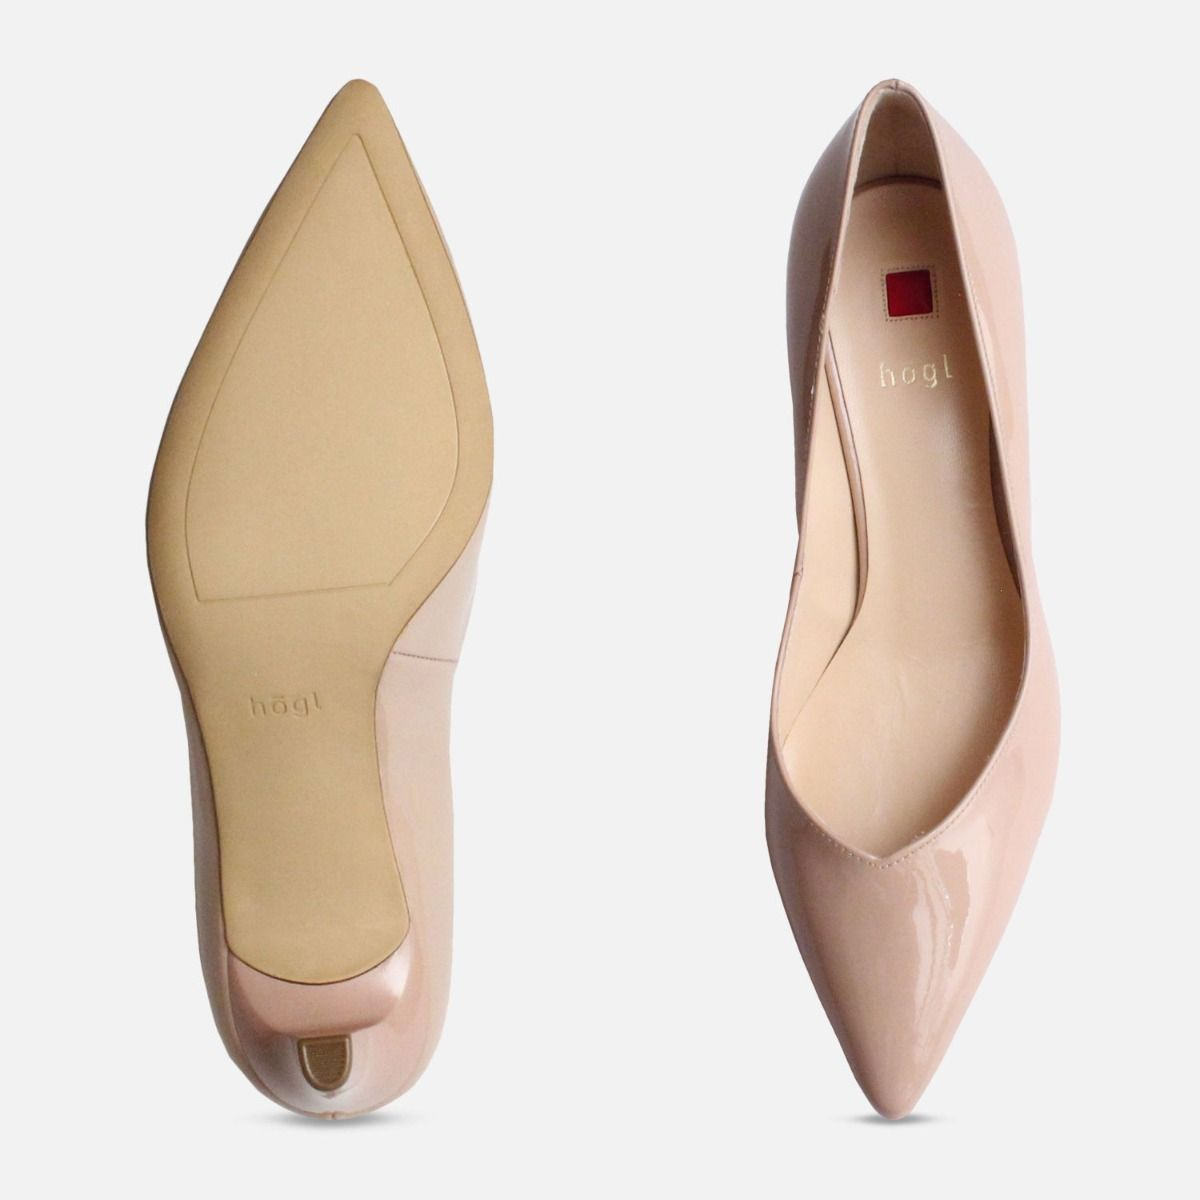 0976045dbe6 Nude Patent Hogl Pointed Toe Medium Heel Shoes